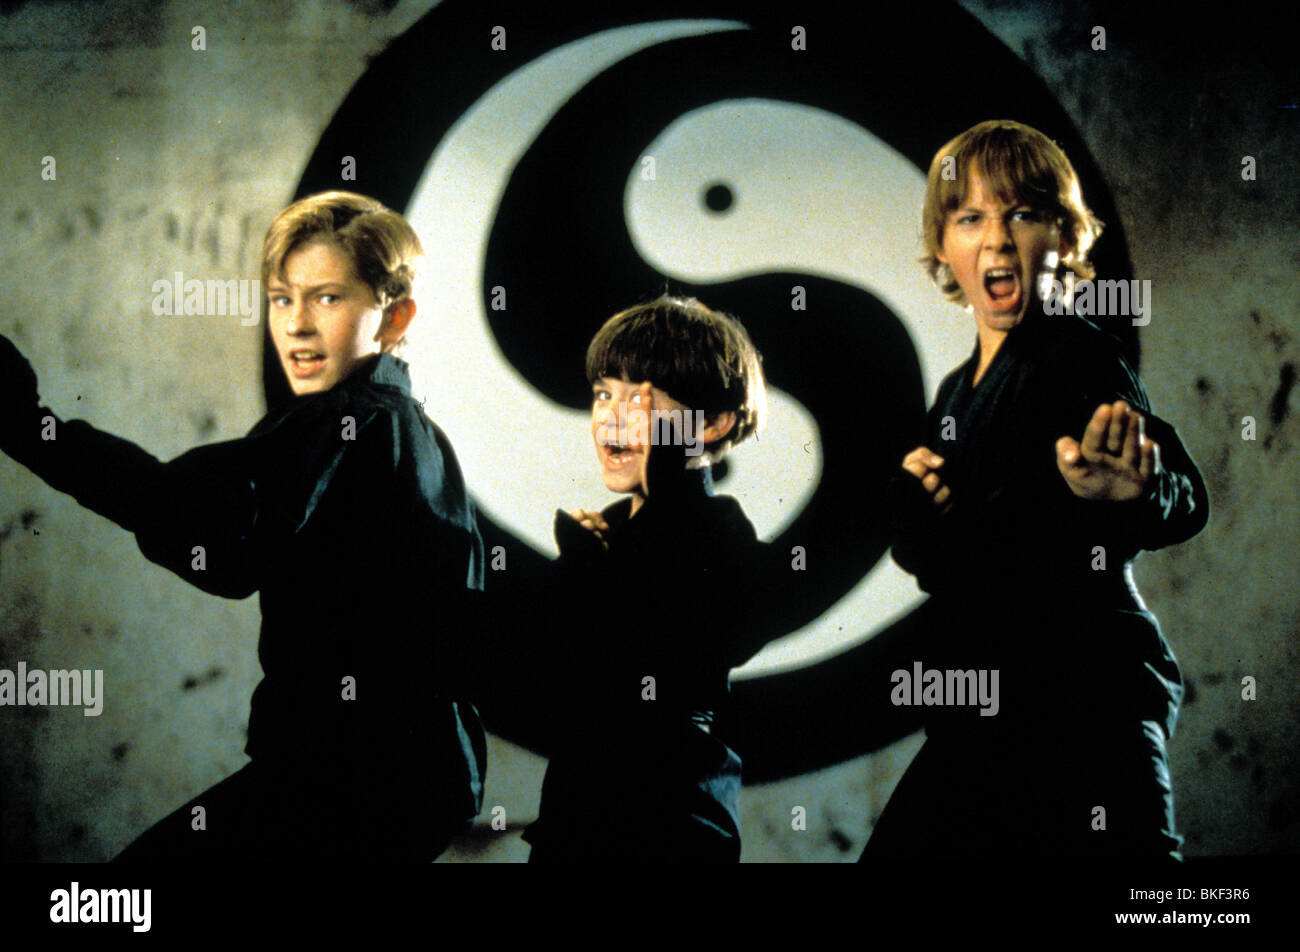 THREE NINJAS (1993) MICHAEL TREANOR, CHAD POWER, MAX ELLIOTT SLADE TNJA 002 - Stock Image